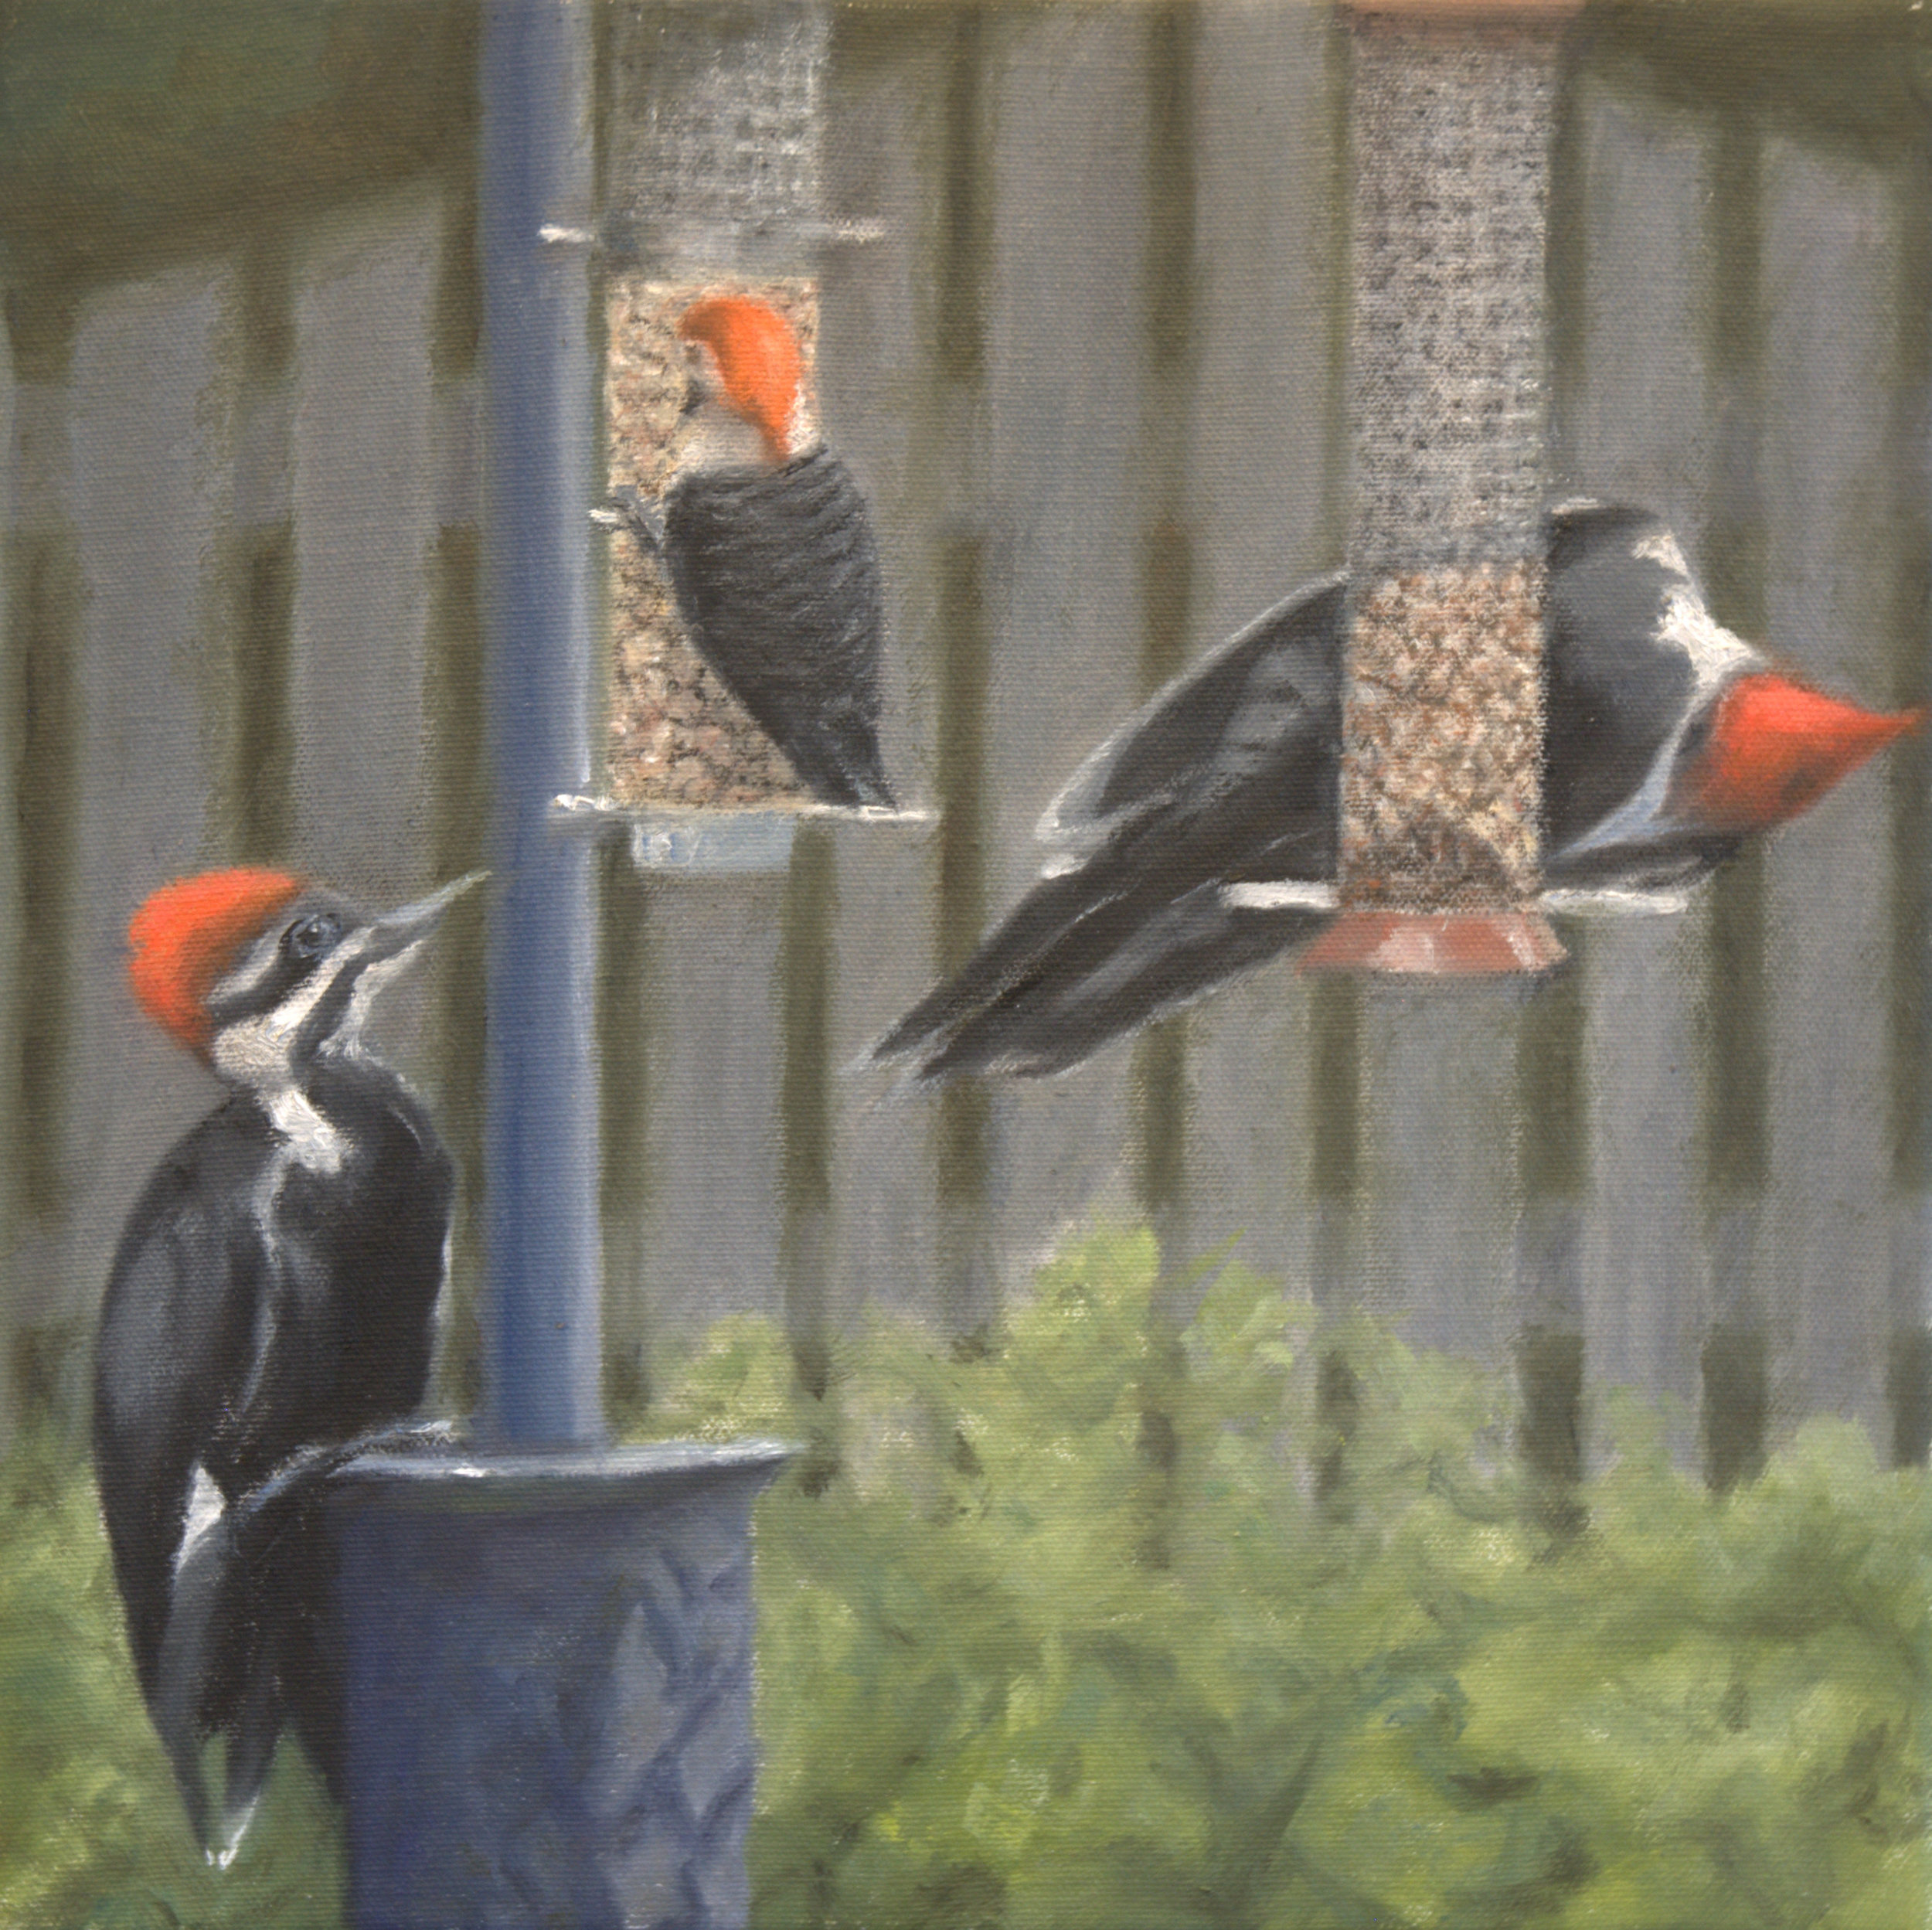 Woodpecker convention